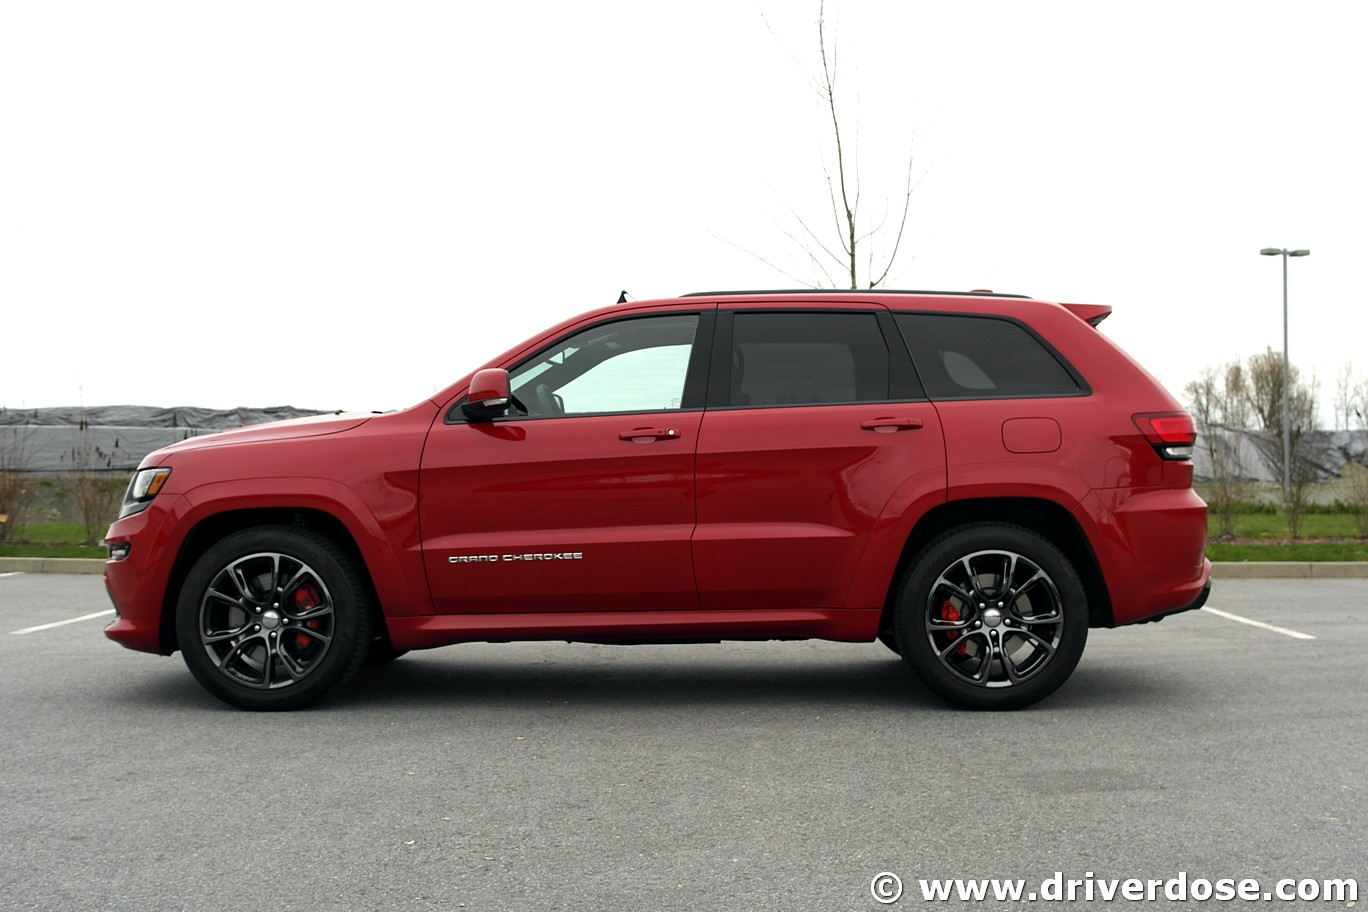 2016 jeep grand cherokee srt test drive review ratings specs driver dose autoblog. Black Bedroom Furniture Sets. Home Design Ideas